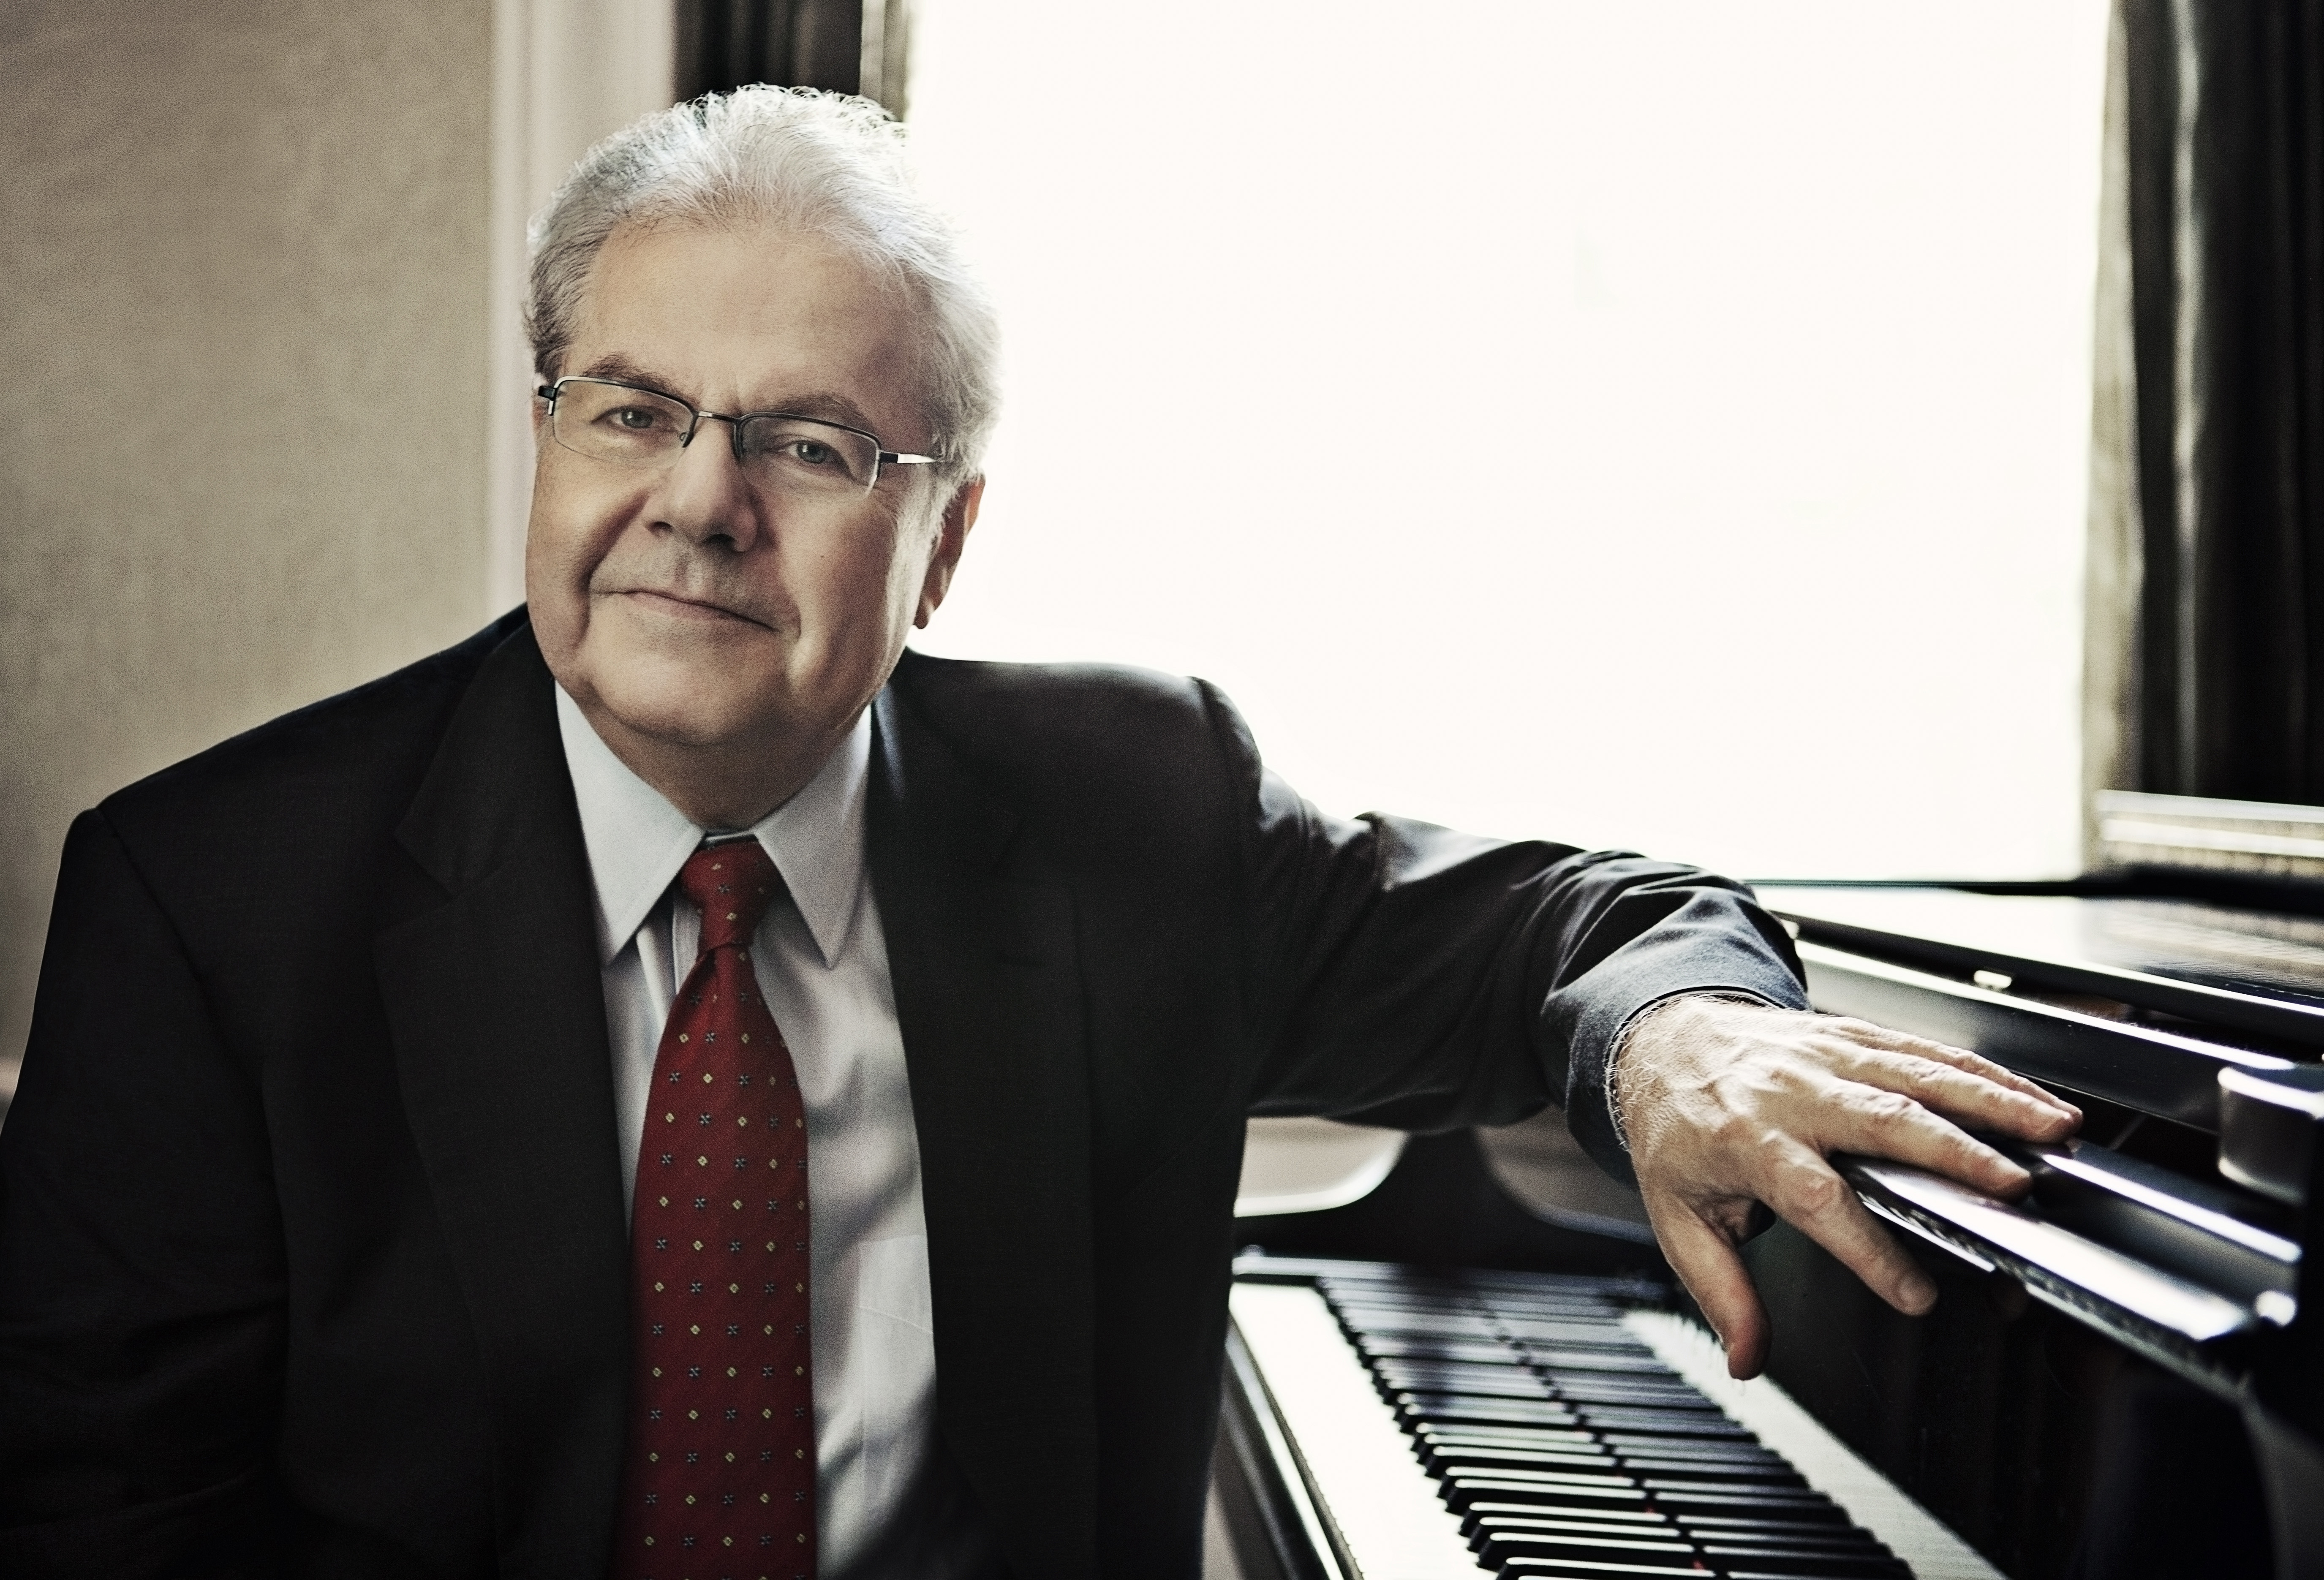 Not My Job: Pianist Emanuel Ax Takes A Quiz On Axe Body Spray